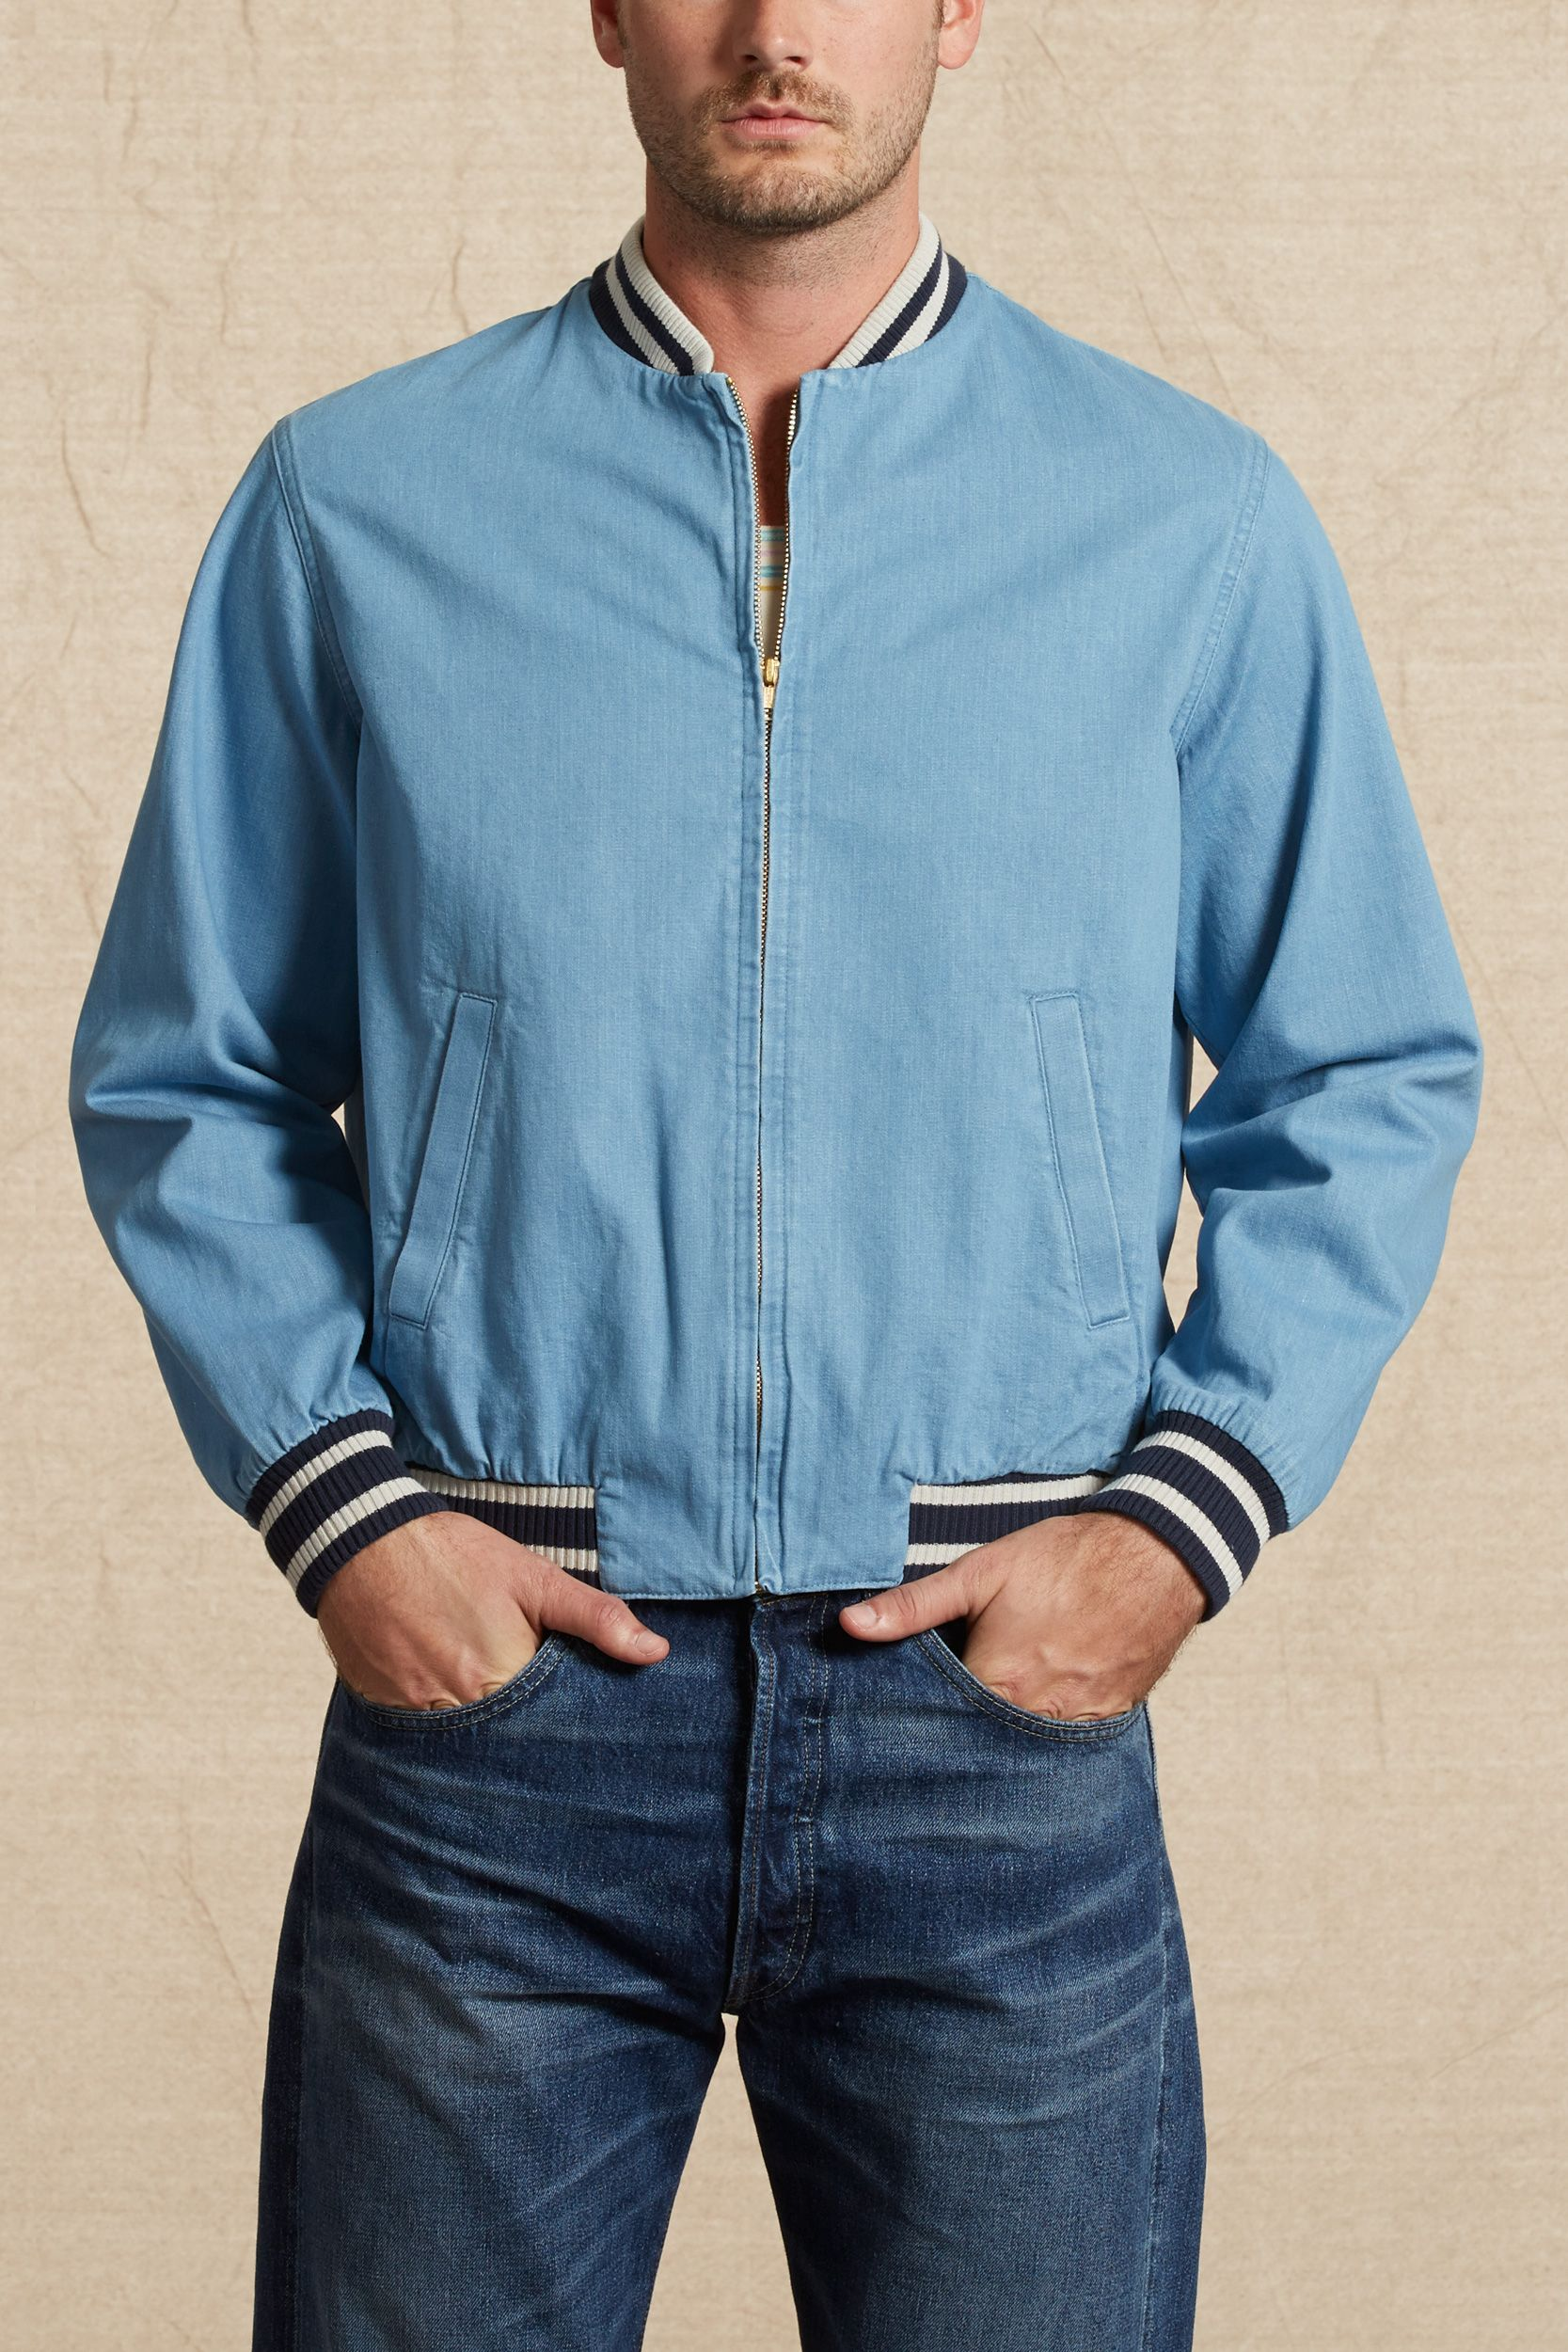 Casuals Bomber Vintage Clothing Men Shop Mens Clothing Casual Bomber